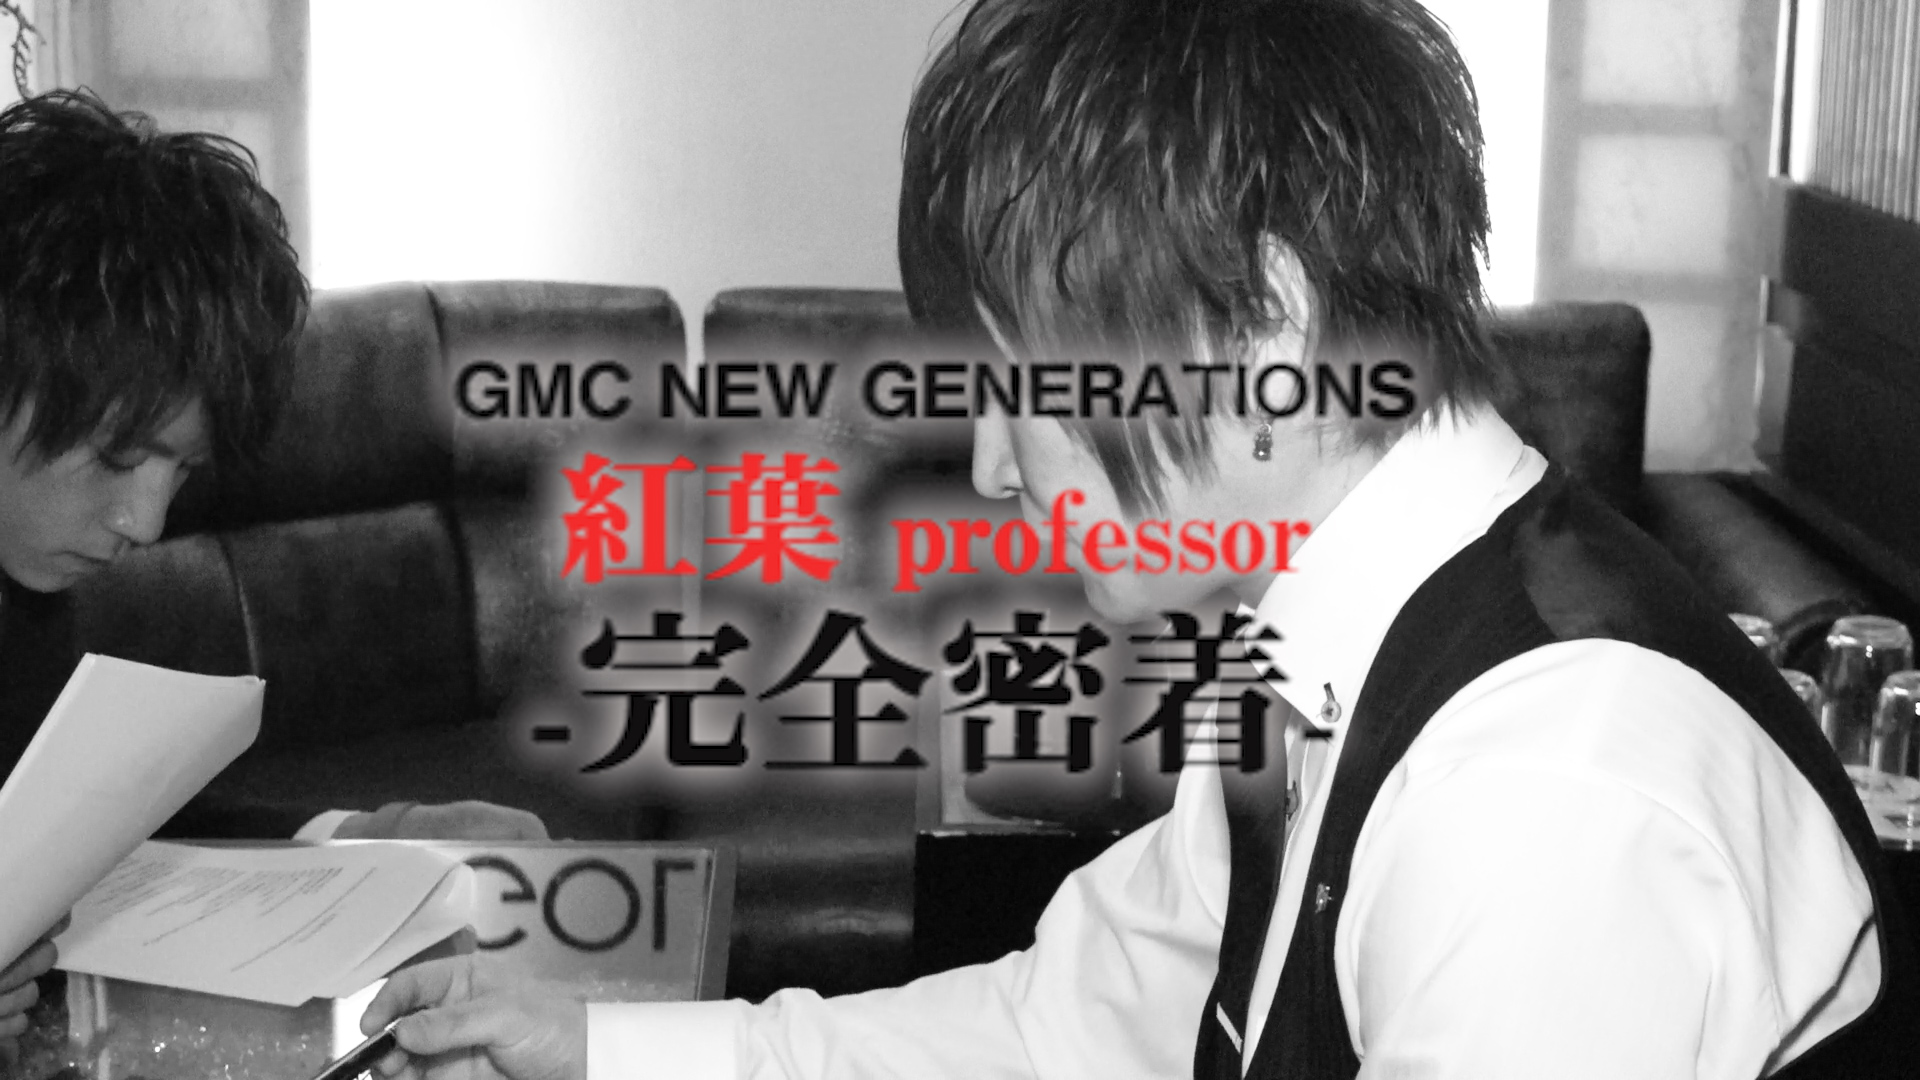 -GMC NEW GENERATION- 紅葉professor 完全密着